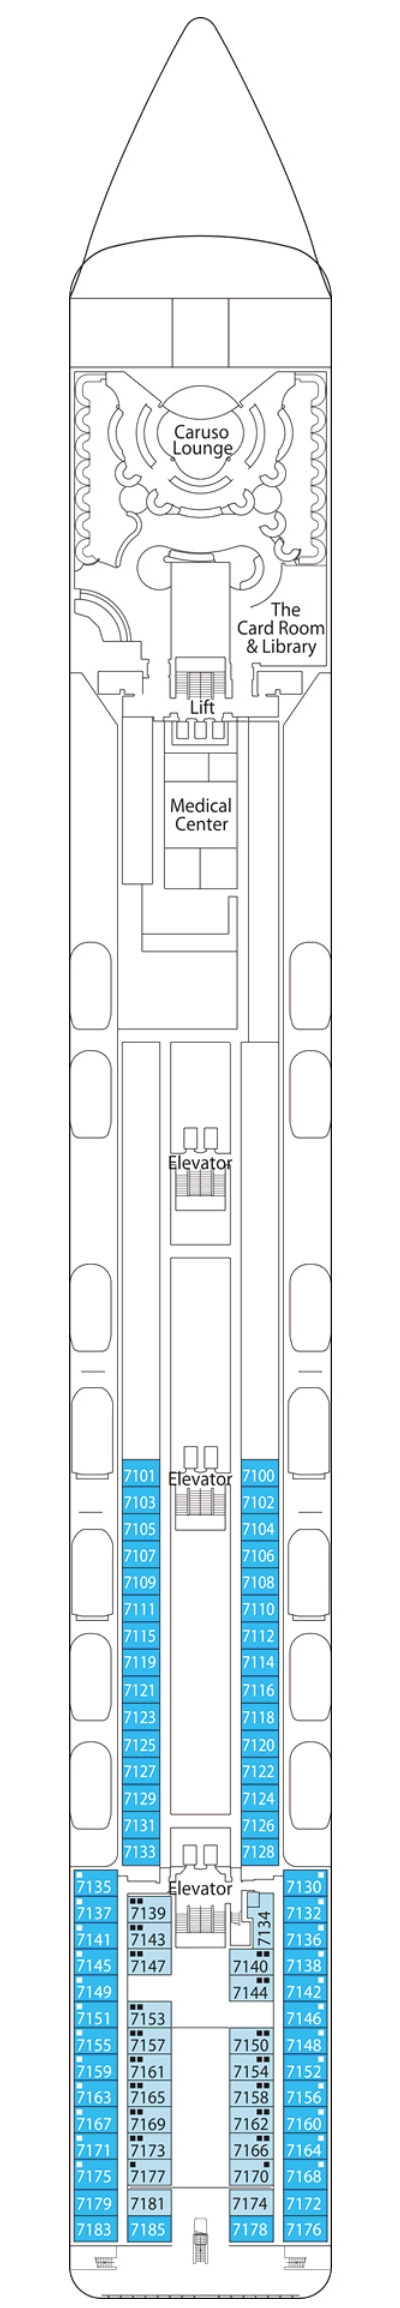 MSC Opera Rigoletto Deck 7 layout